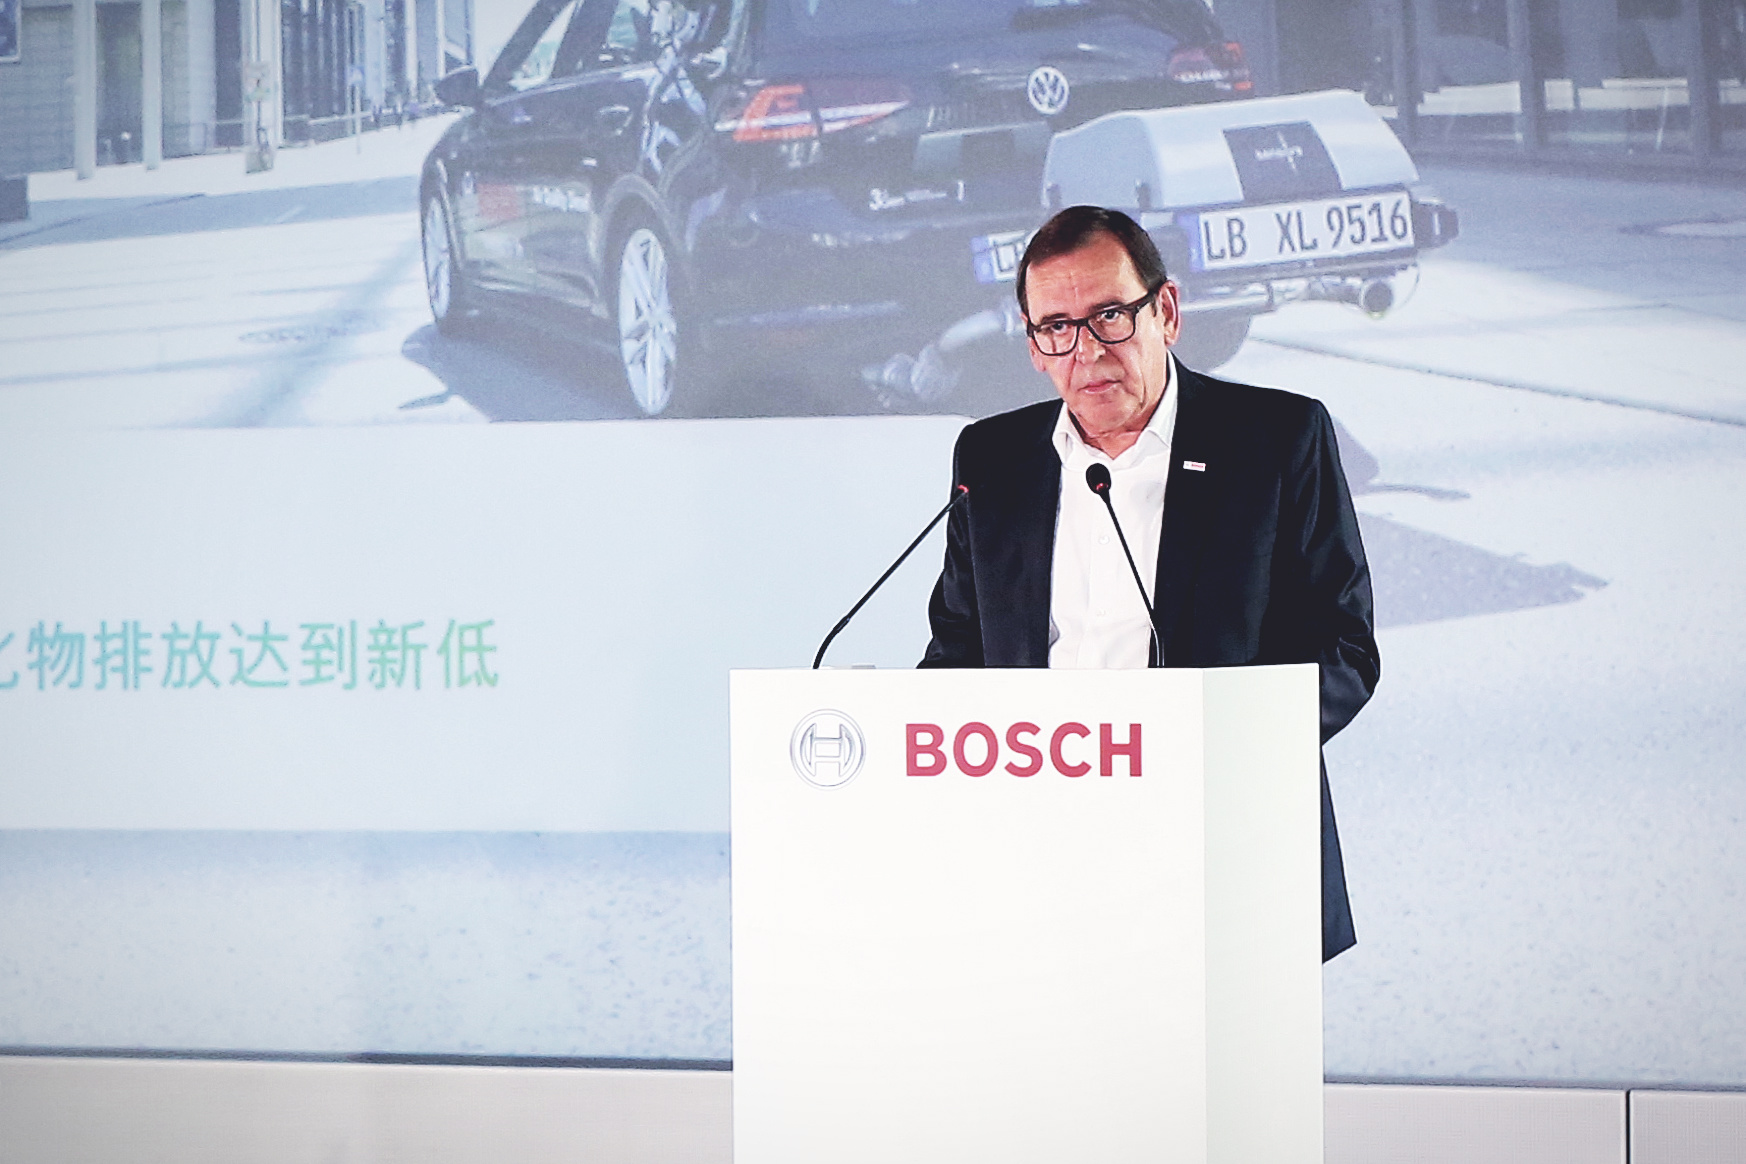 Bosch employs more than 60,000 associates in China, which is its largest market outside Germany